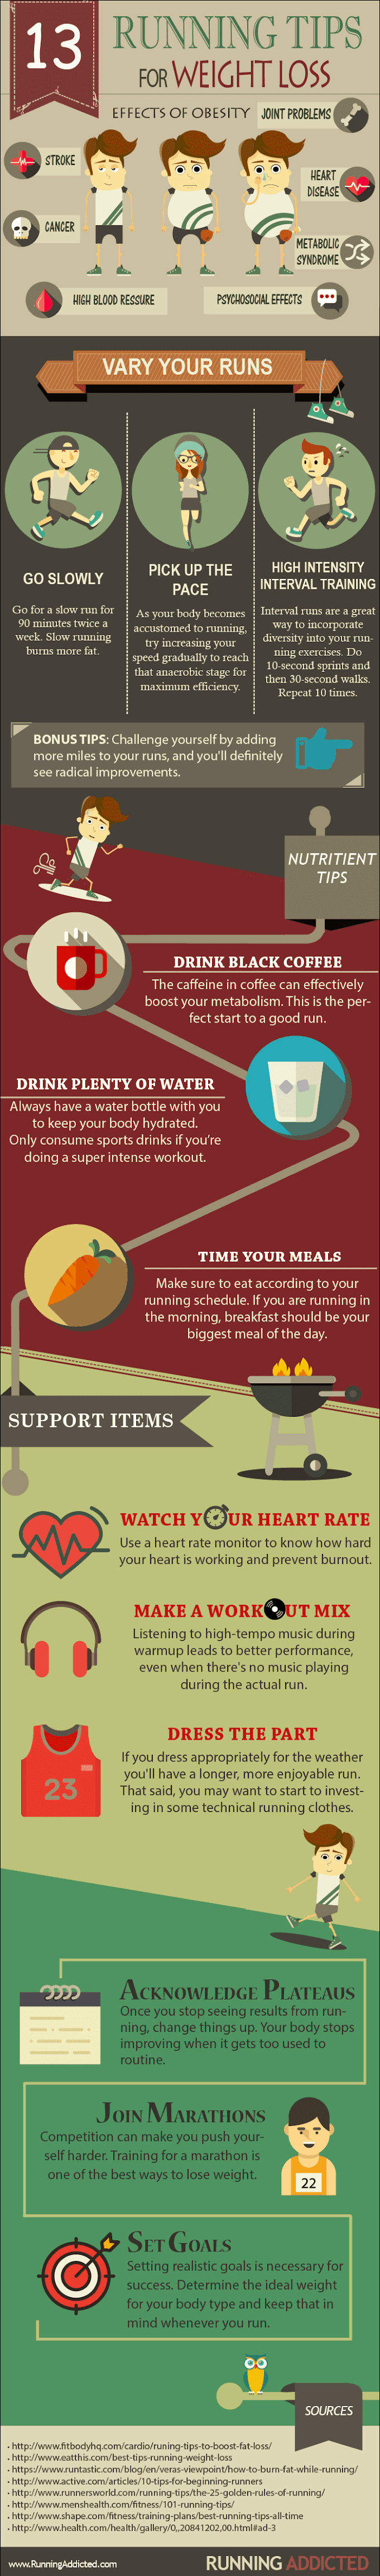 13 Running Tips For Weight Loss #infographic